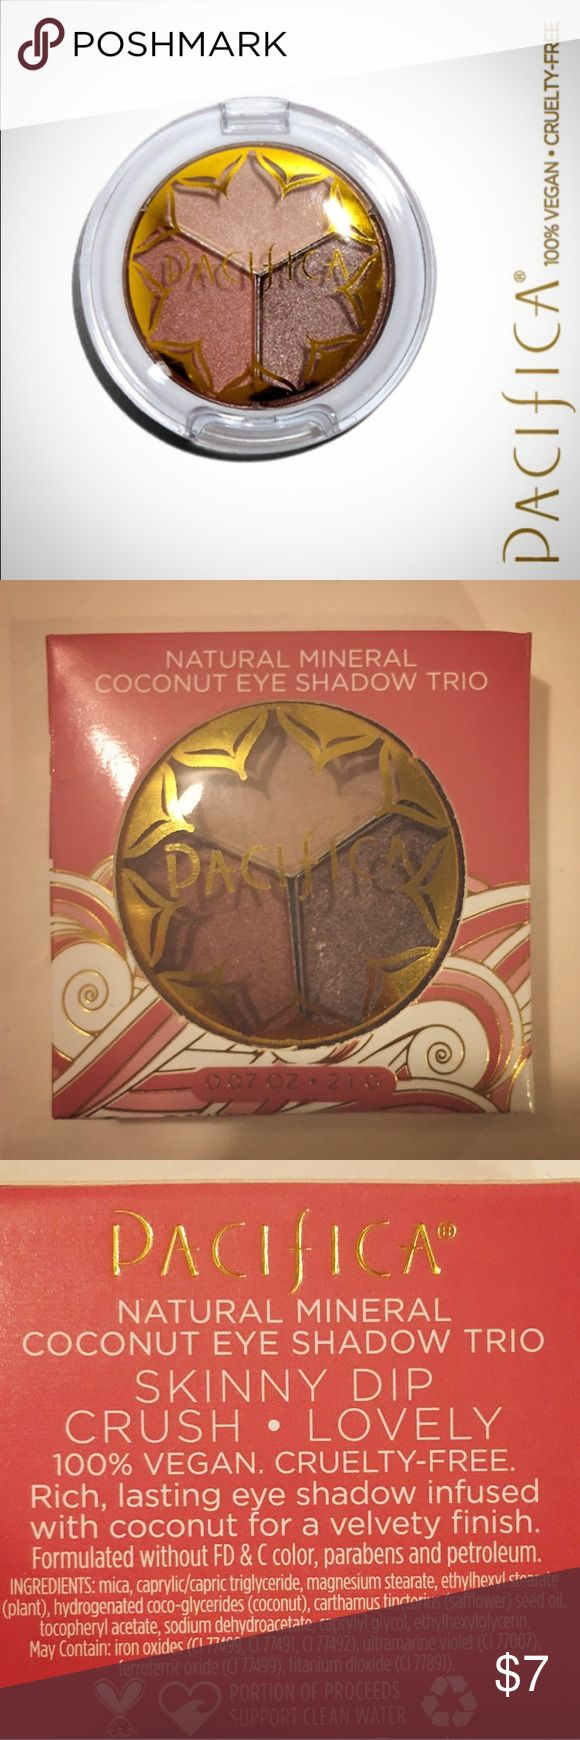 💥SALE💥NIB Pacifica Natural Coconut Palette Unopened box. Pacifica Natural Mineral Coconut Eye Shadow Sample Palette Trio - 100% VEGAN & CRUELTY FREE. NIB, smoke free home. 🌴 🌊   This shimmering trio of shades includes Crush (beige), Skinny Dip (copper) and Lovely (brown). These richly pigmented, velvety-smooth eye shadows complement each other for a subtle yet glitzy everyday eye look. 😘💕  Pacifica's products are not only innovative, but totally sustainable, and they're all are 100%…